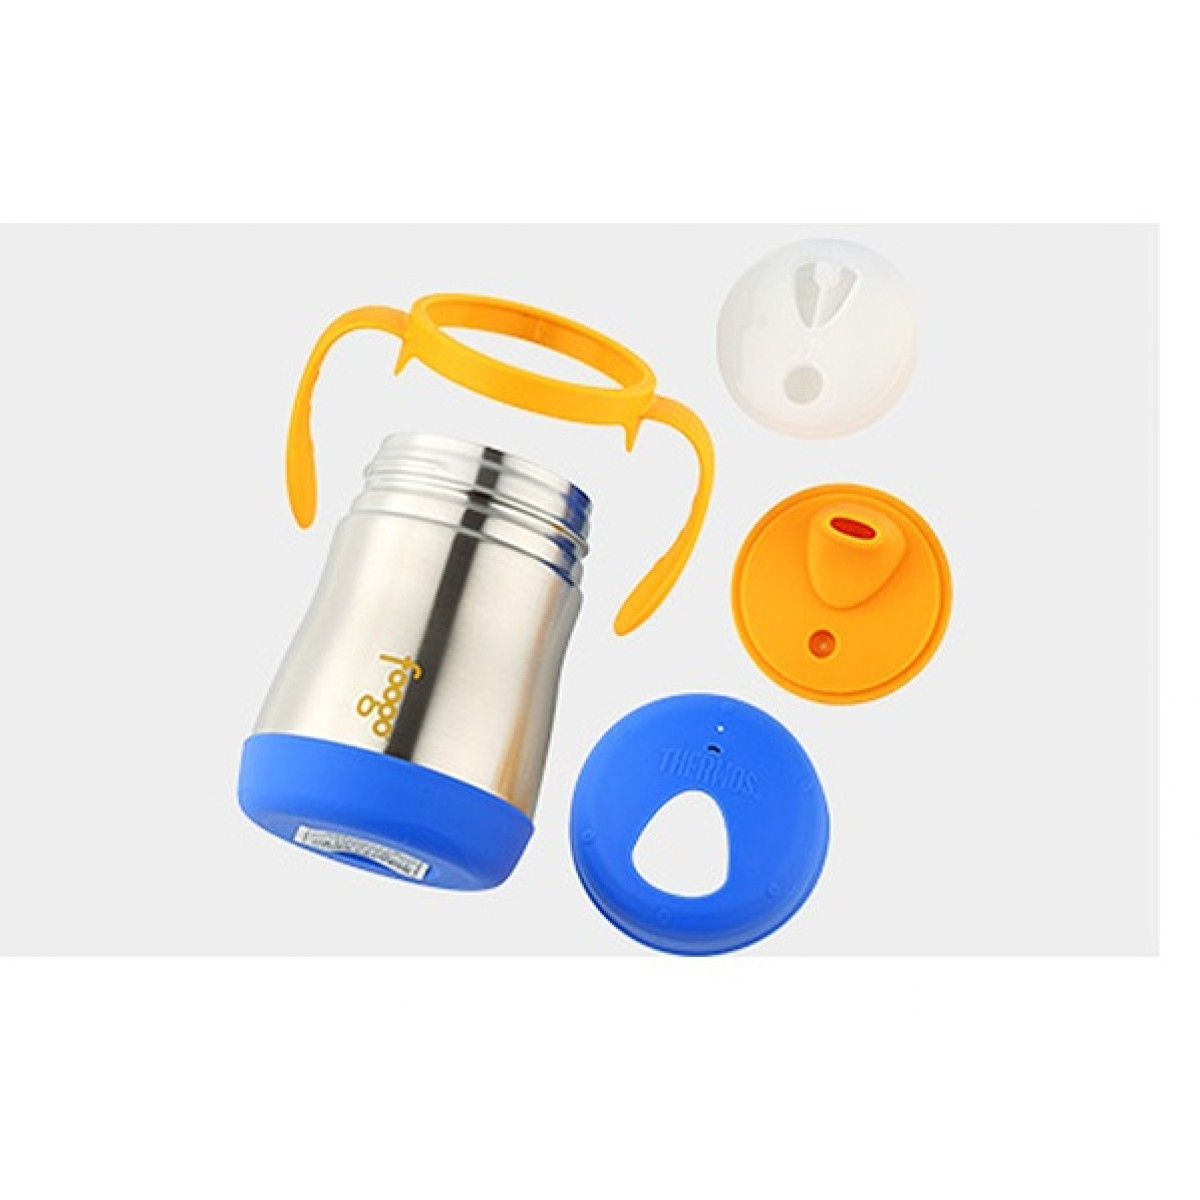 COMBO SET OF 2- Authentic Thermos Foogo Food Jar 295ml + Thermos Foogo 0.21L Hygienic Soft Spout Sippy Cup with Handle